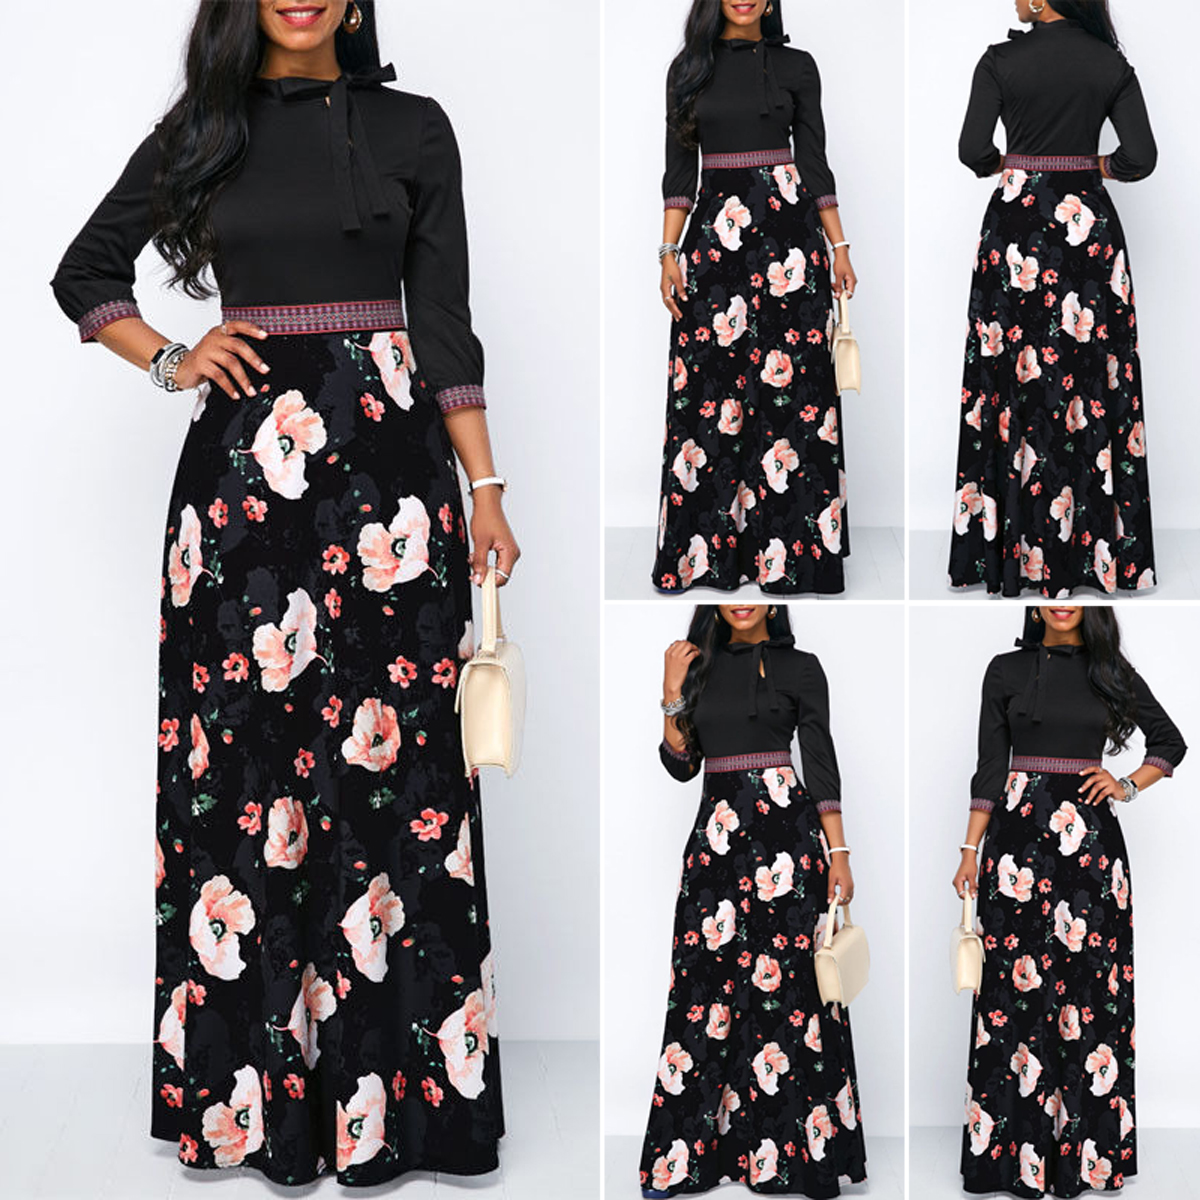 8a56c7017fd5 Floral Chiffon Maxi Dress Long Sleeve